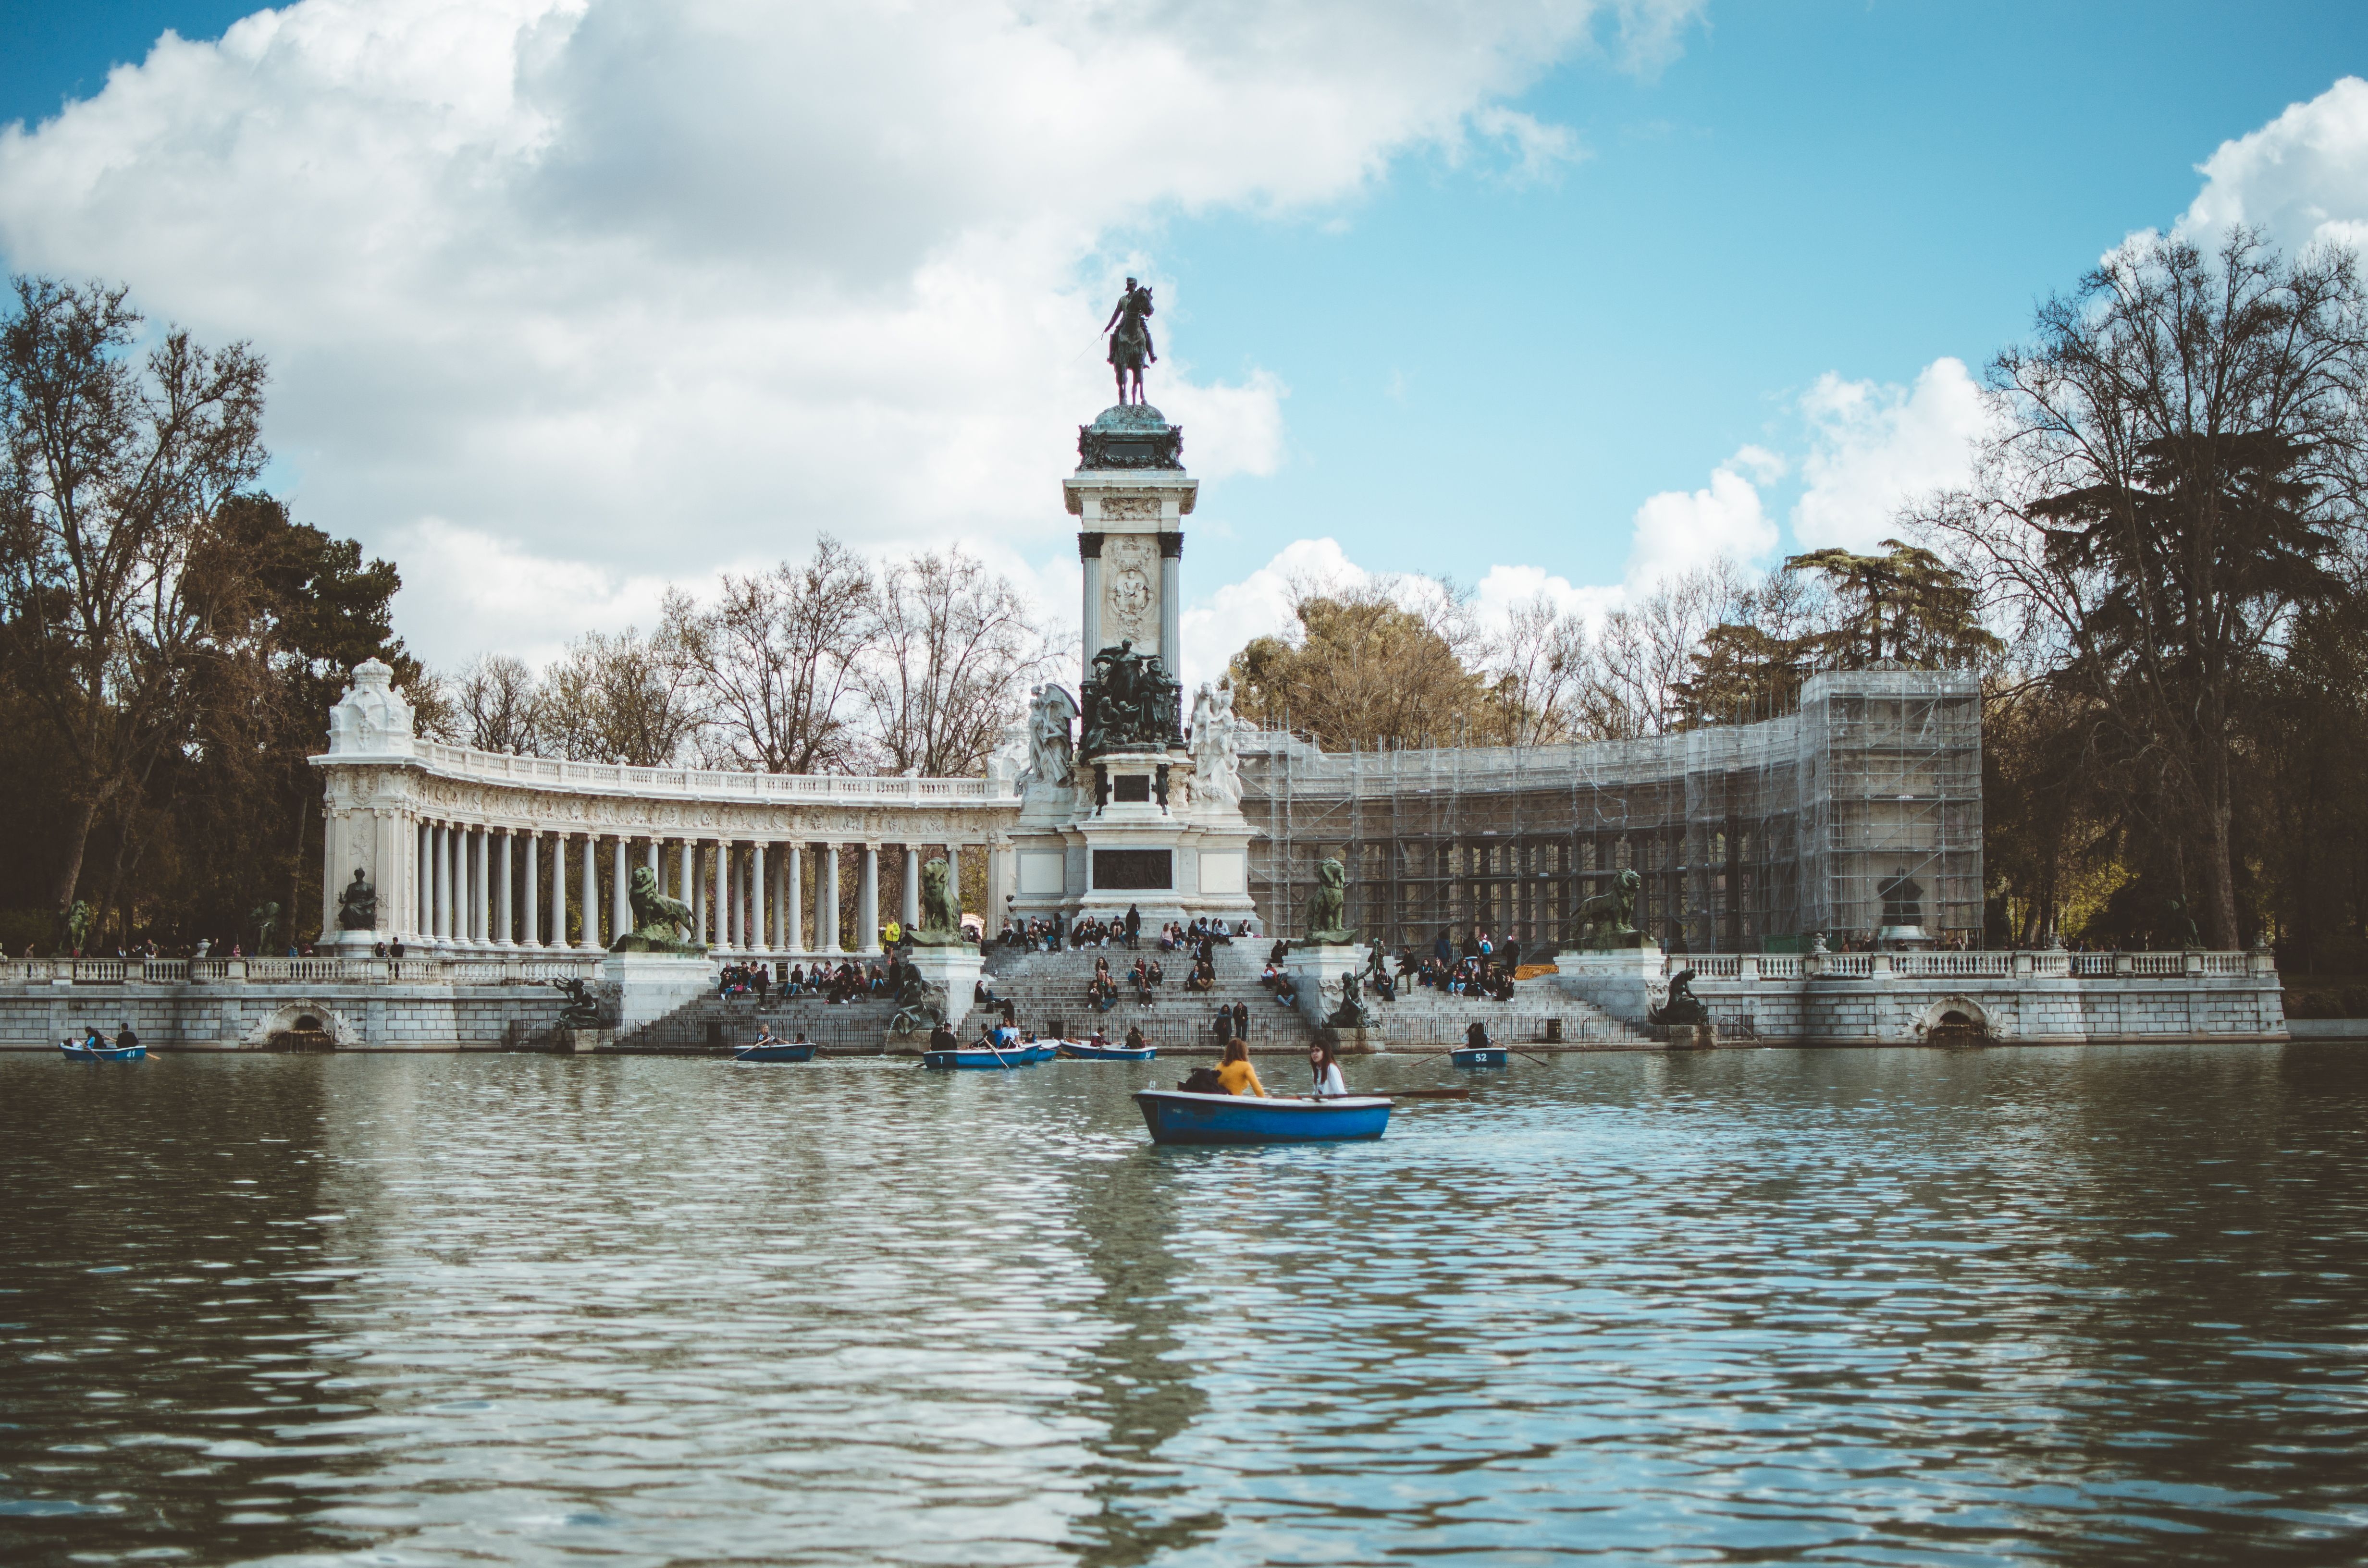 boat in water and building with statue